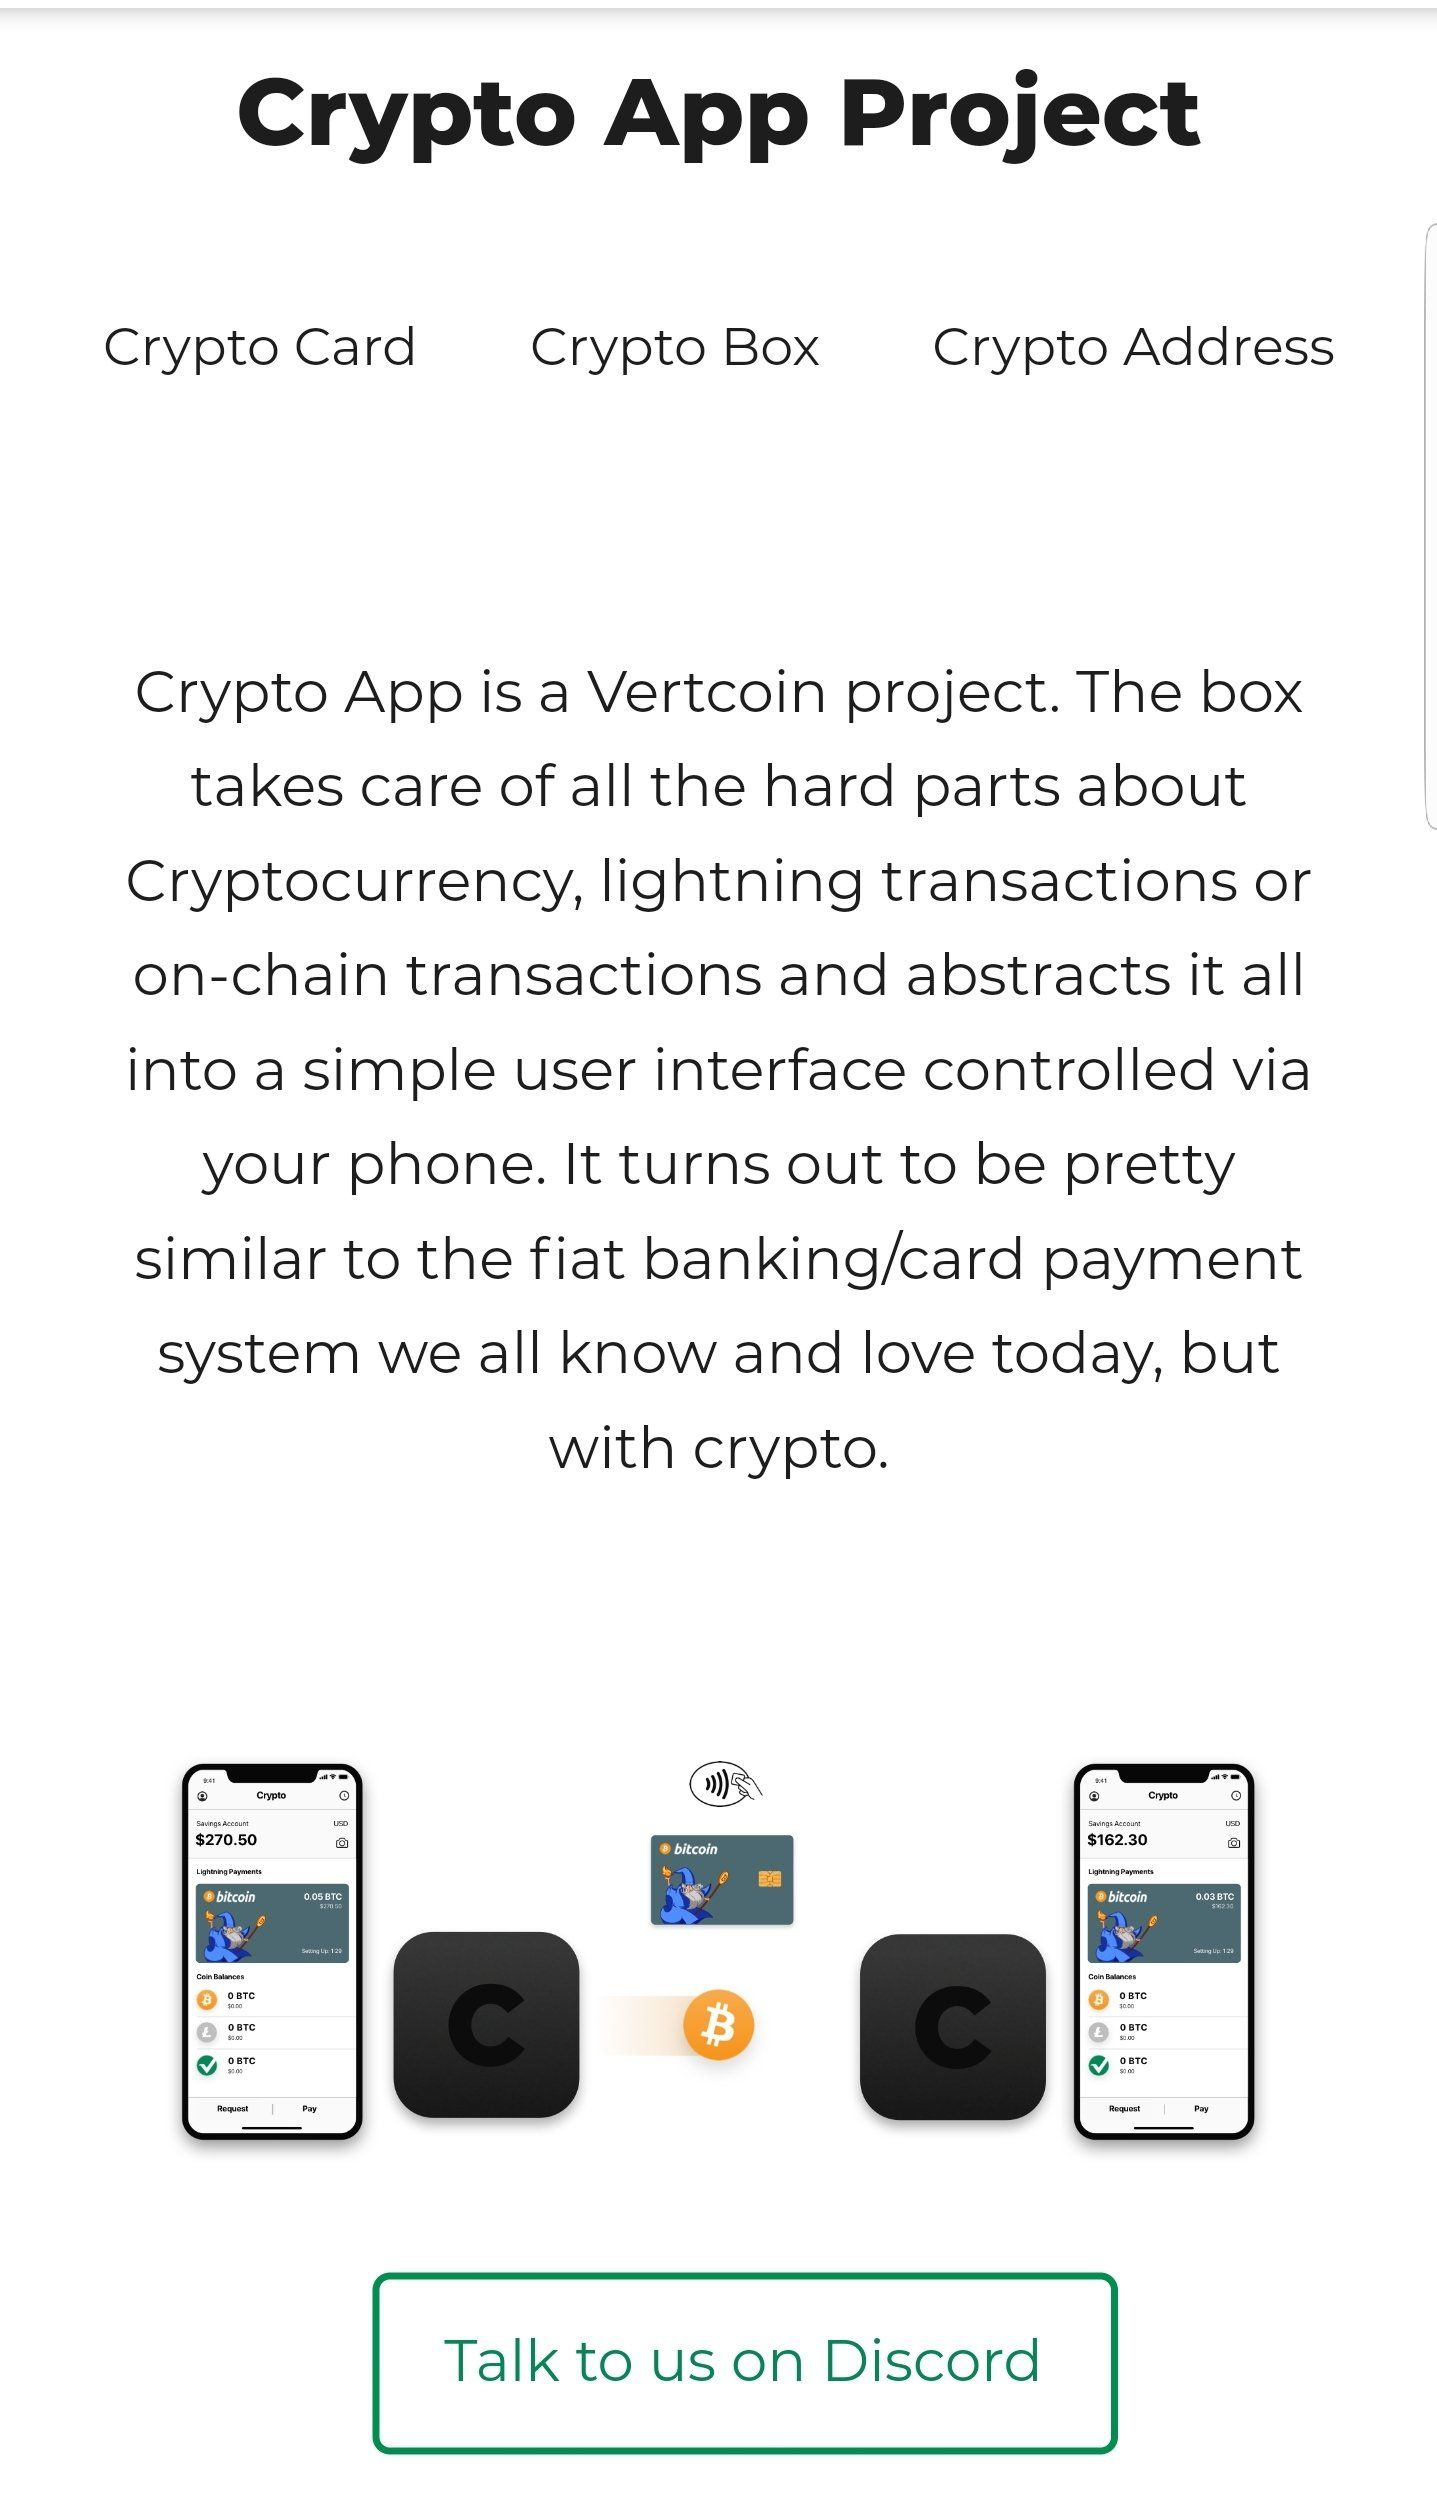 CryptoCurrency Any other similar projects to this